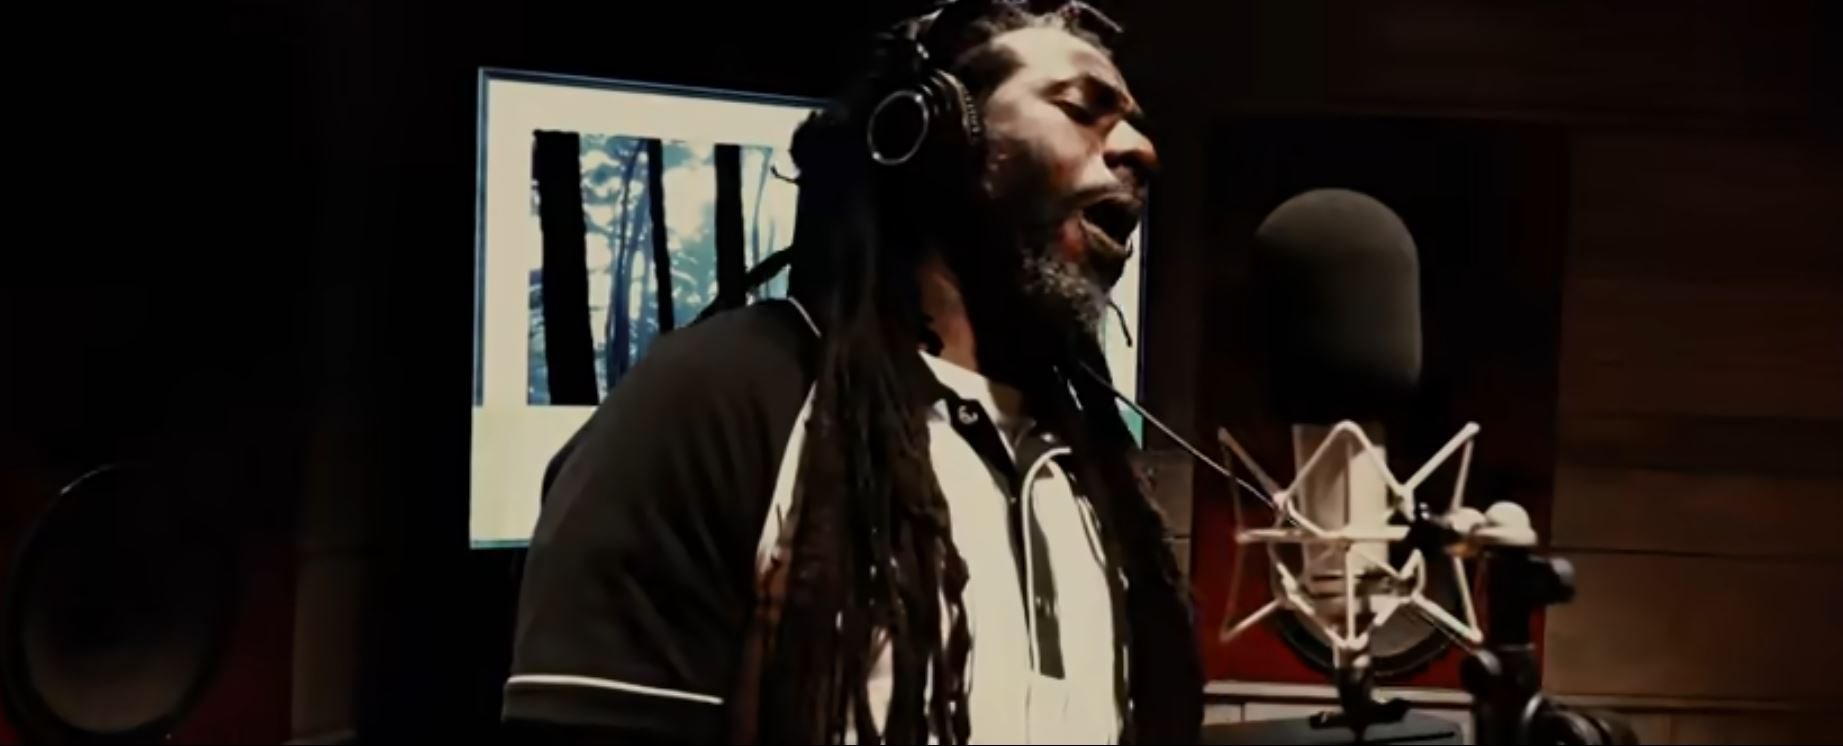 Buju Banton does an artful performance on this new release from Khaled